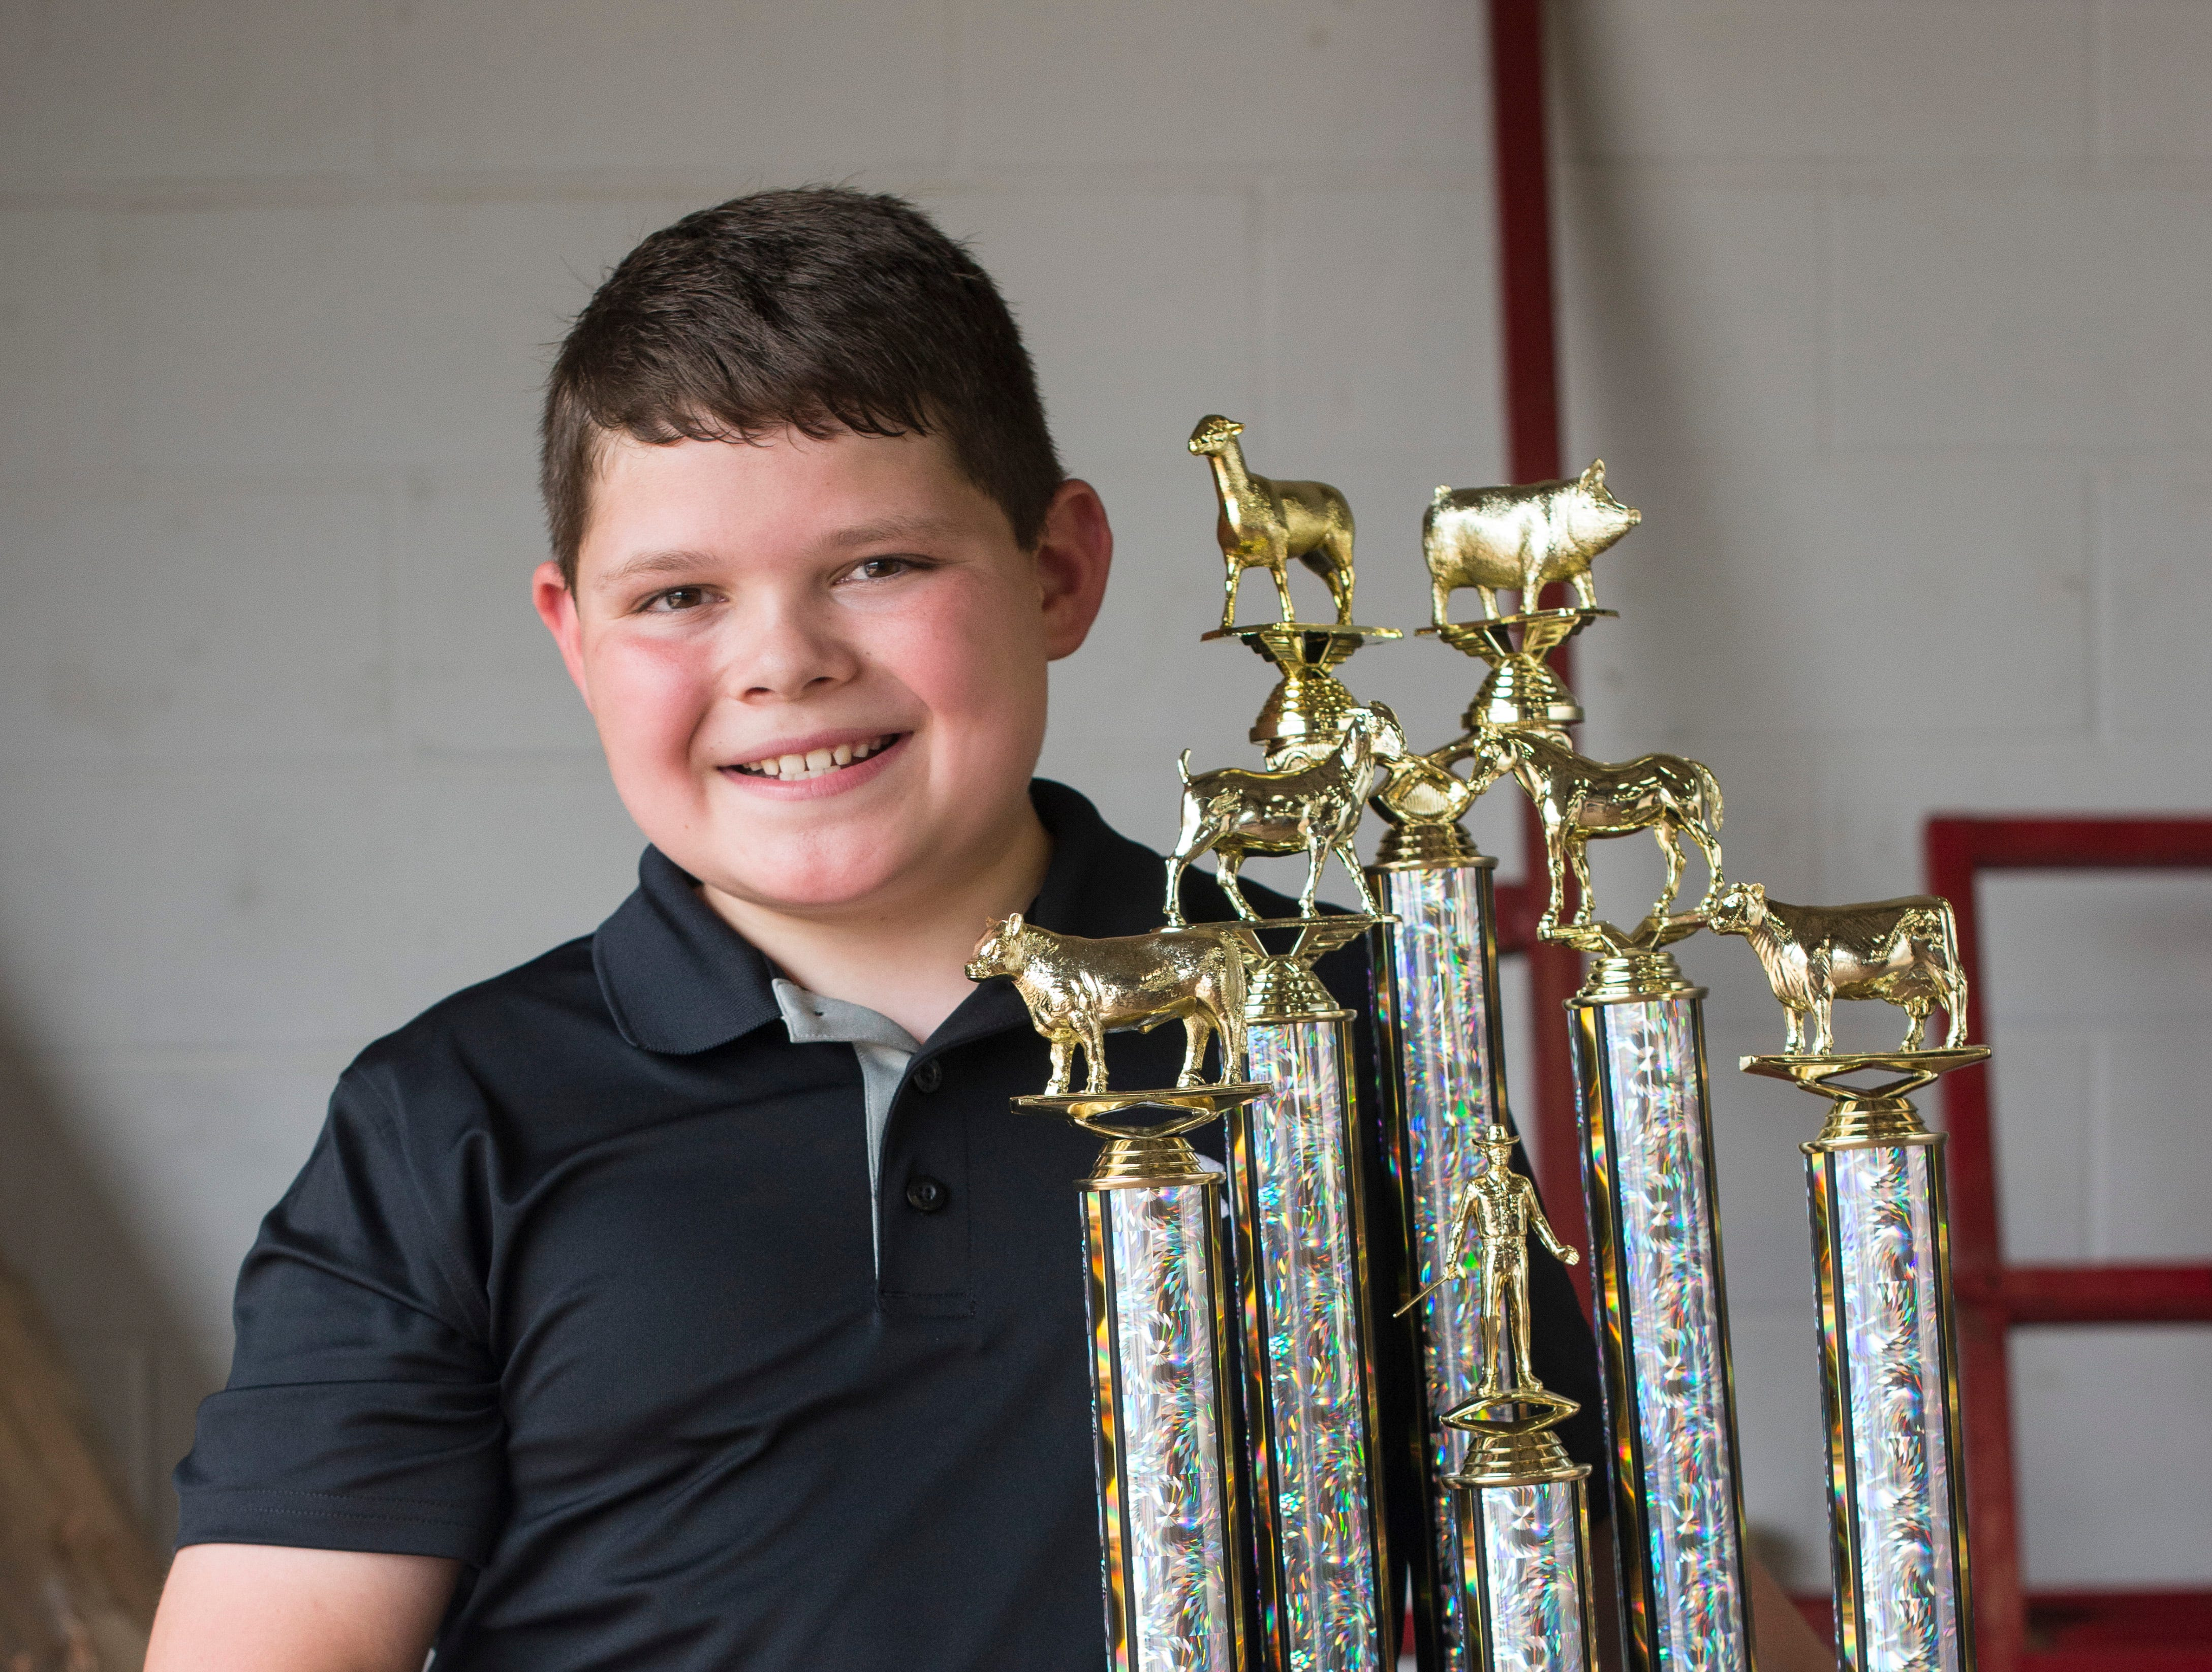 Hayden Good, winner of the junior class, poses with his trophy following the conclusion of the Showman of Showmen Contest in Large Animals at the Ross County Fair on August 10, 2018, in Chillicothe, Ohio.